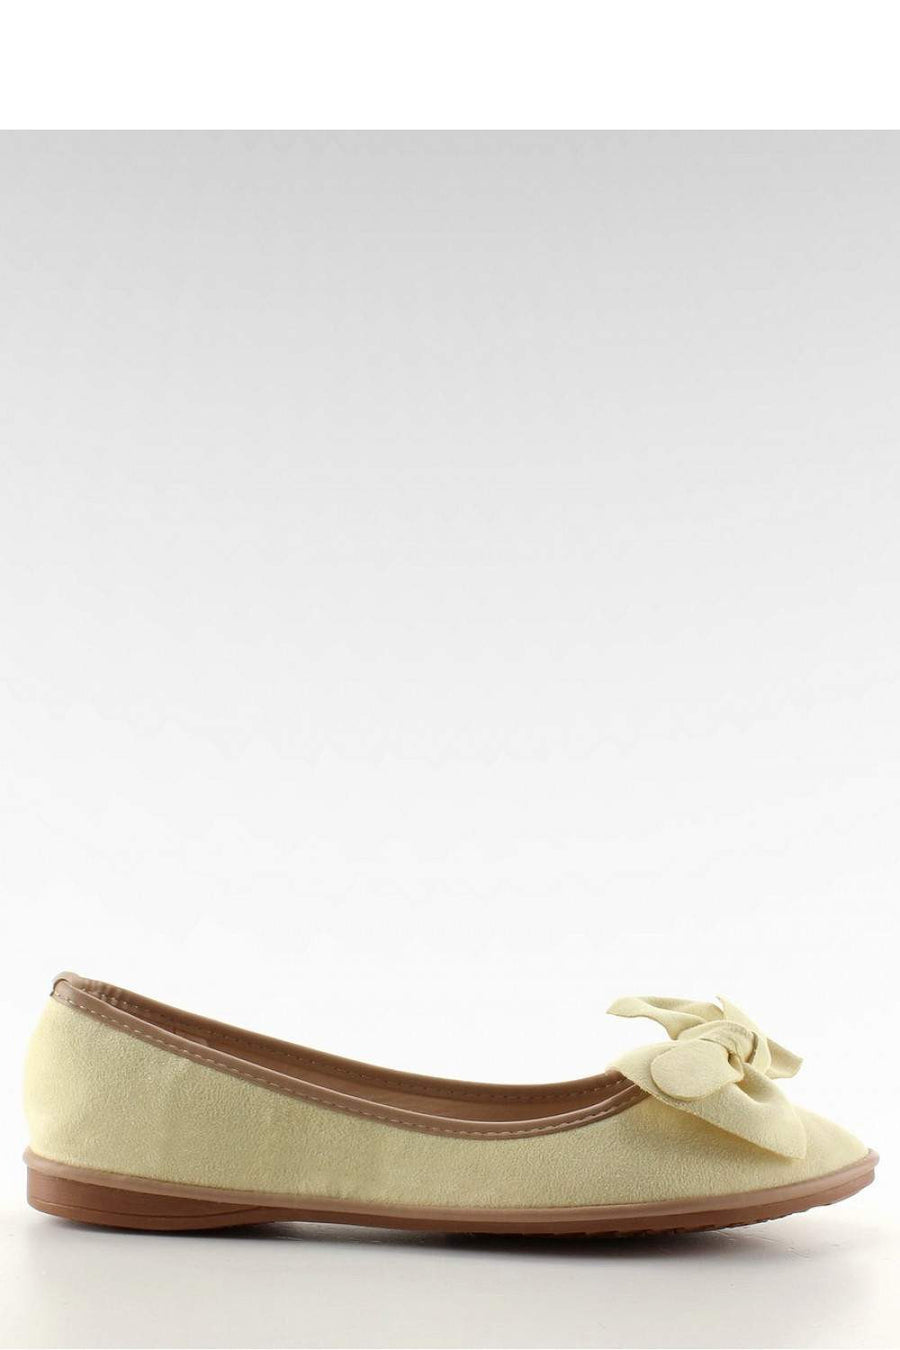 Ballet flats 76584 Inello-Ballet Flats, Ballet Pumps for Women-Inello-Très Fancy